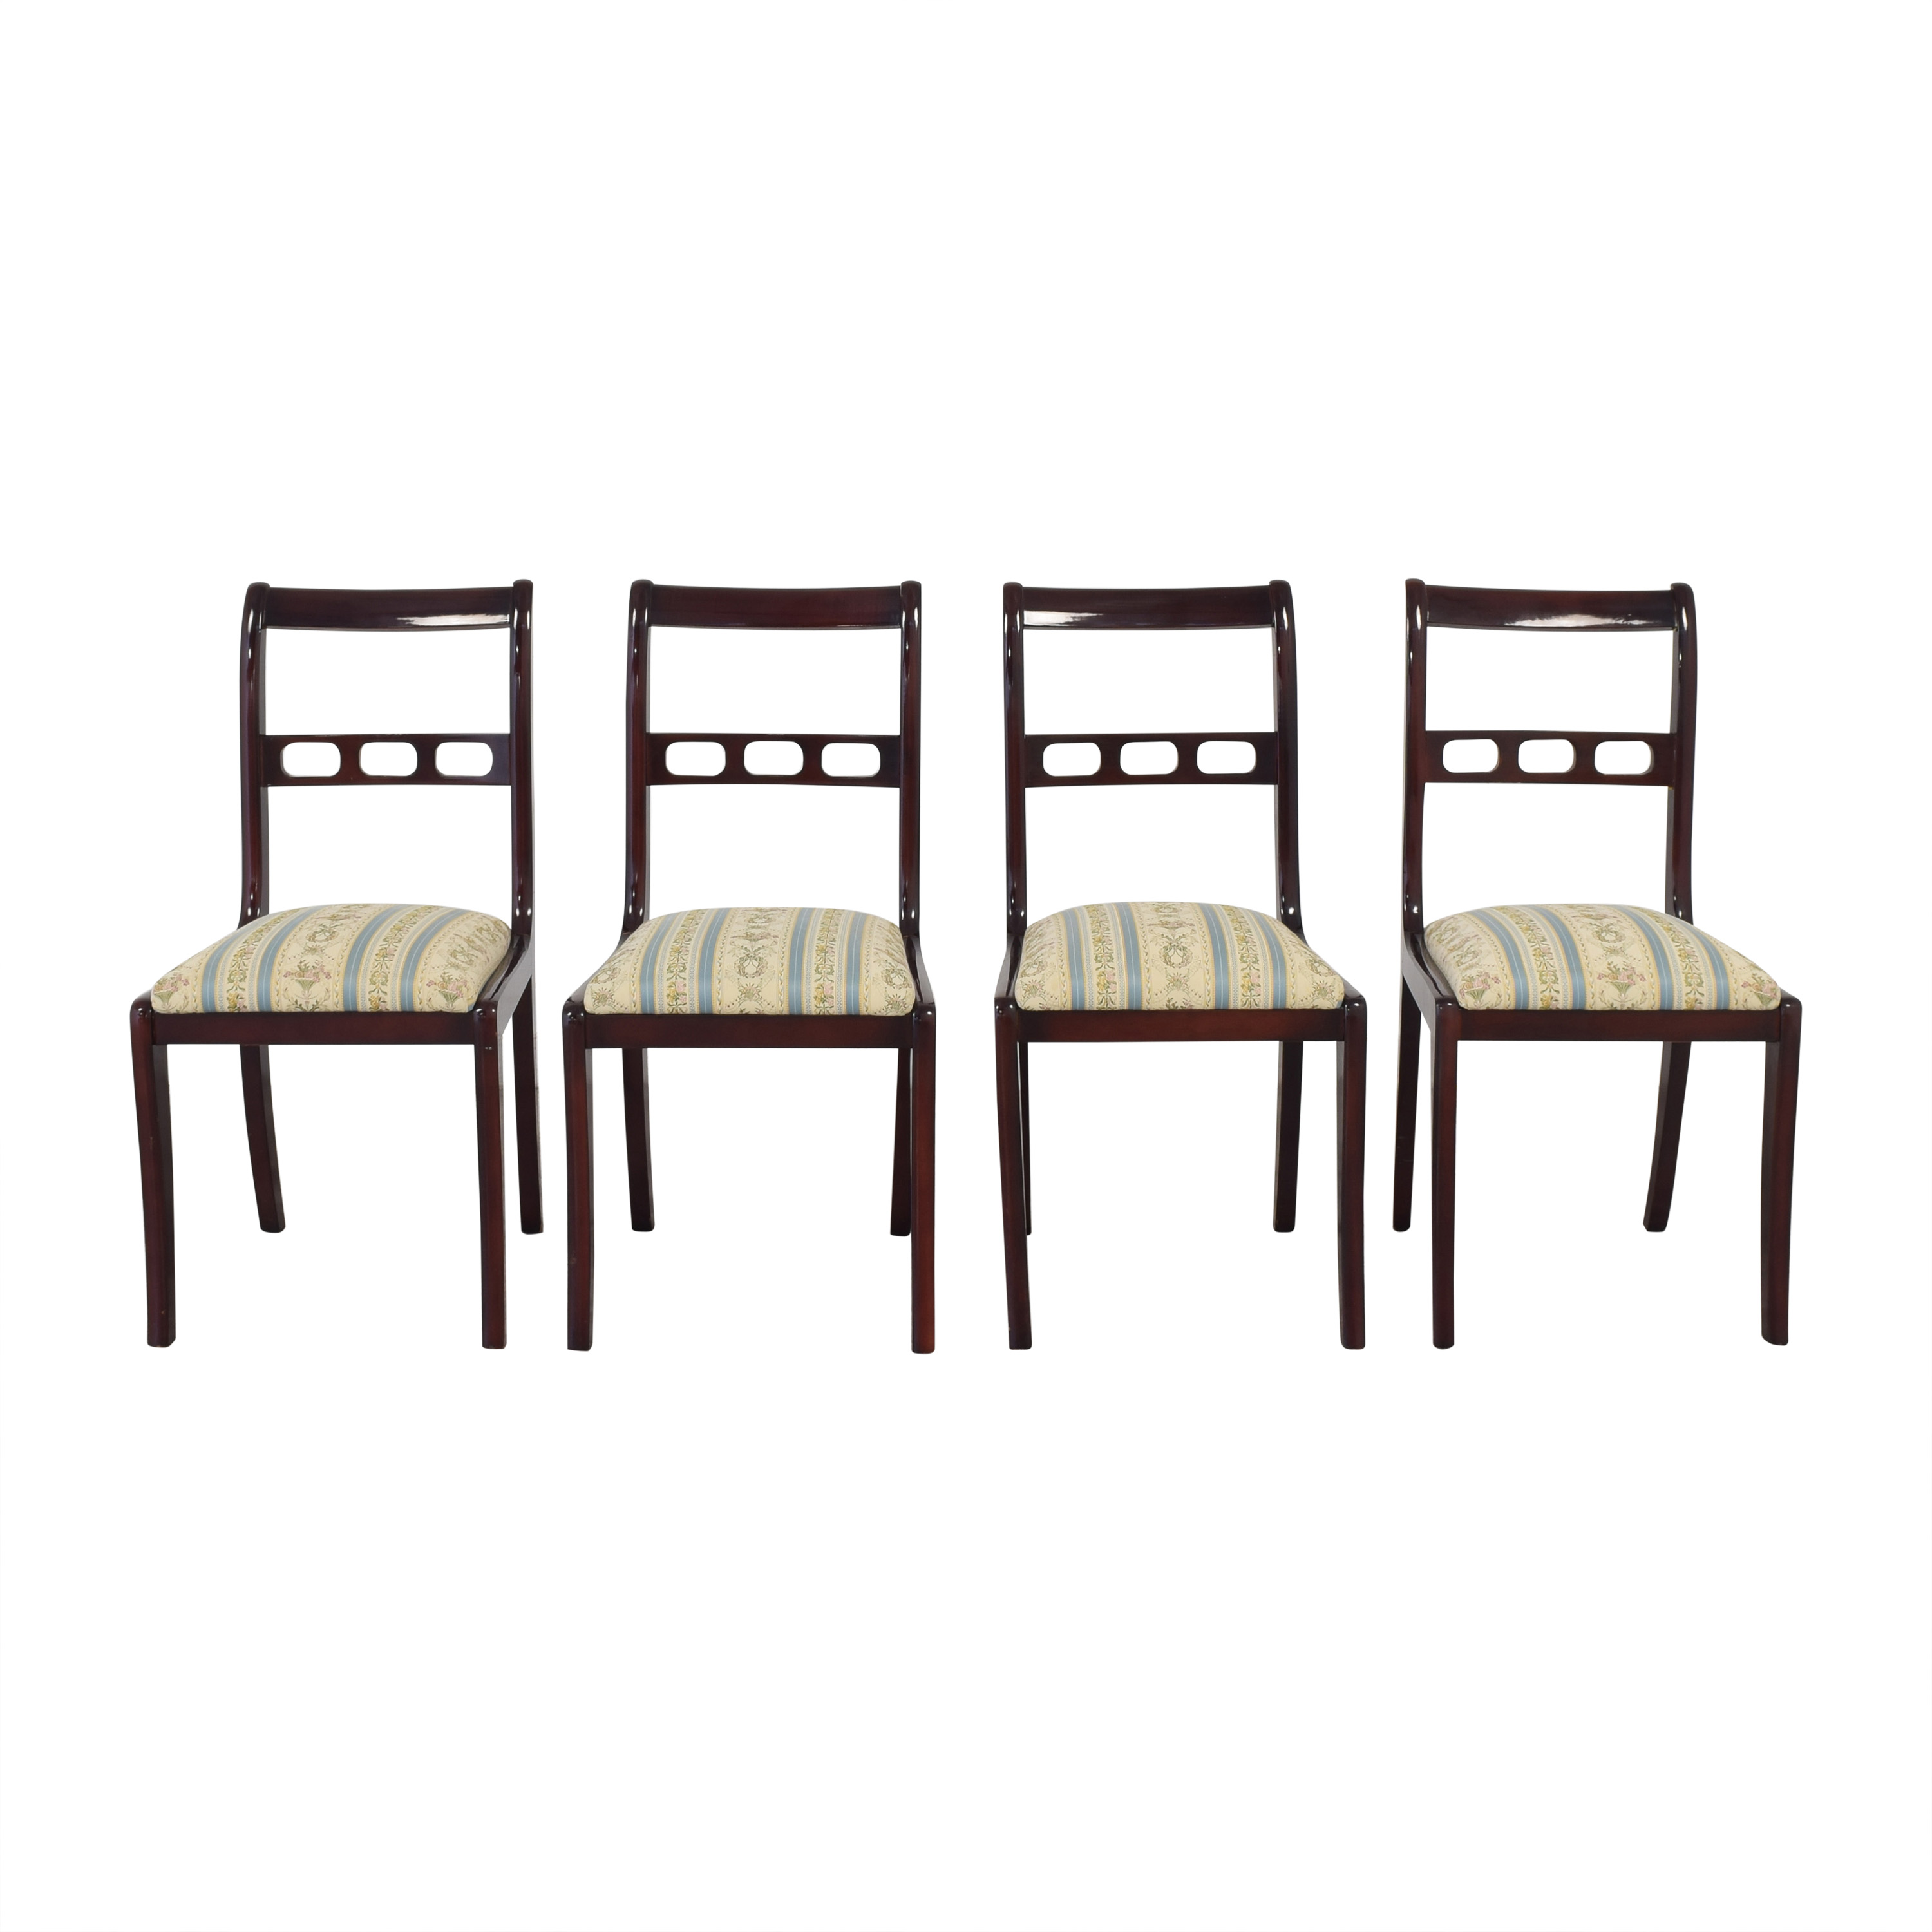 Upholstered Seat Dining Chairs price